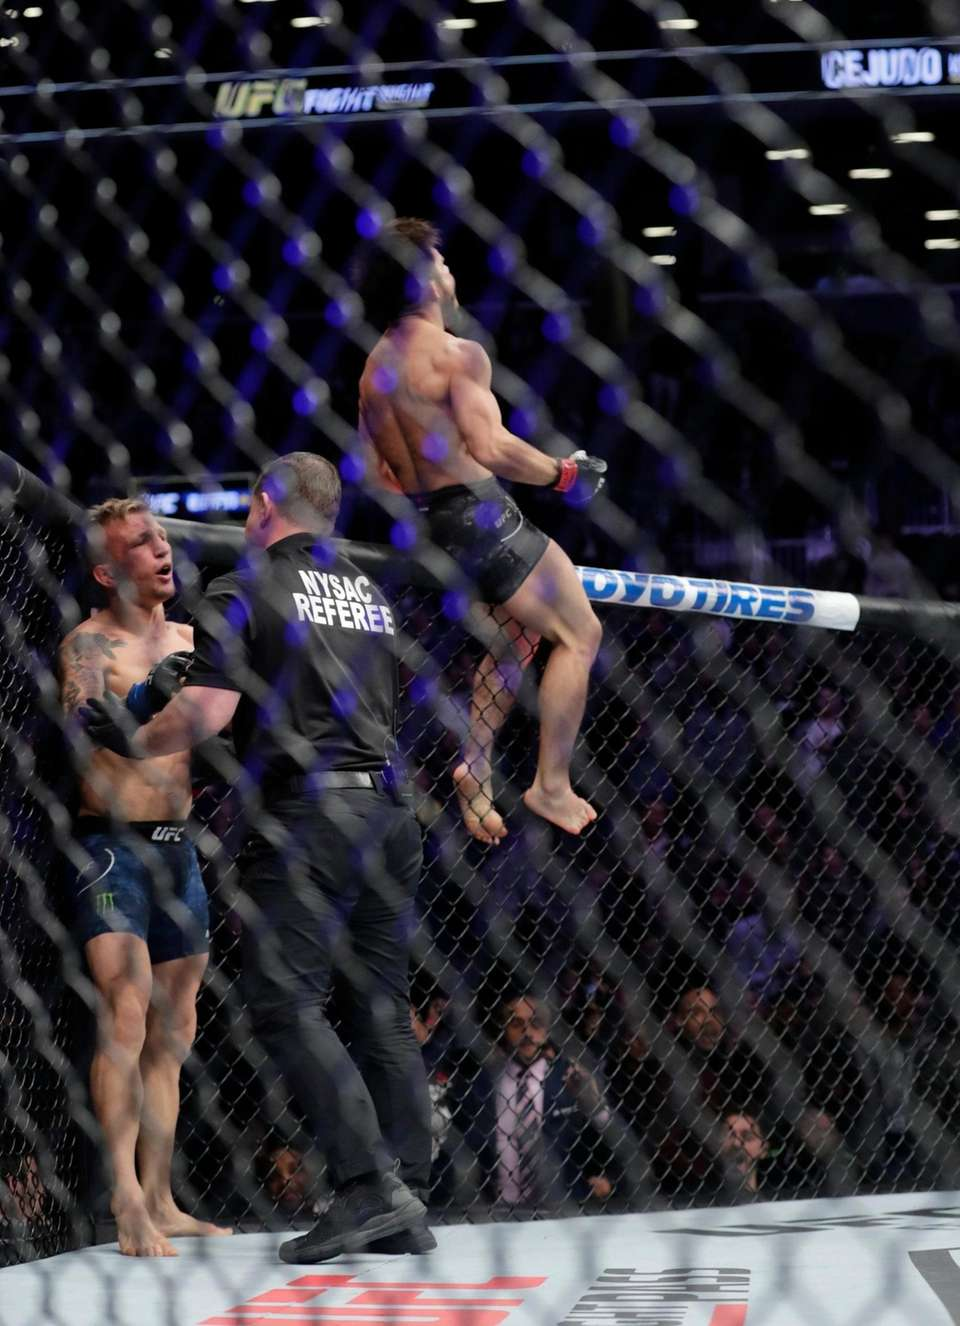 Henry Cejudo, right, celebrates after stopping TJ Dillashaw